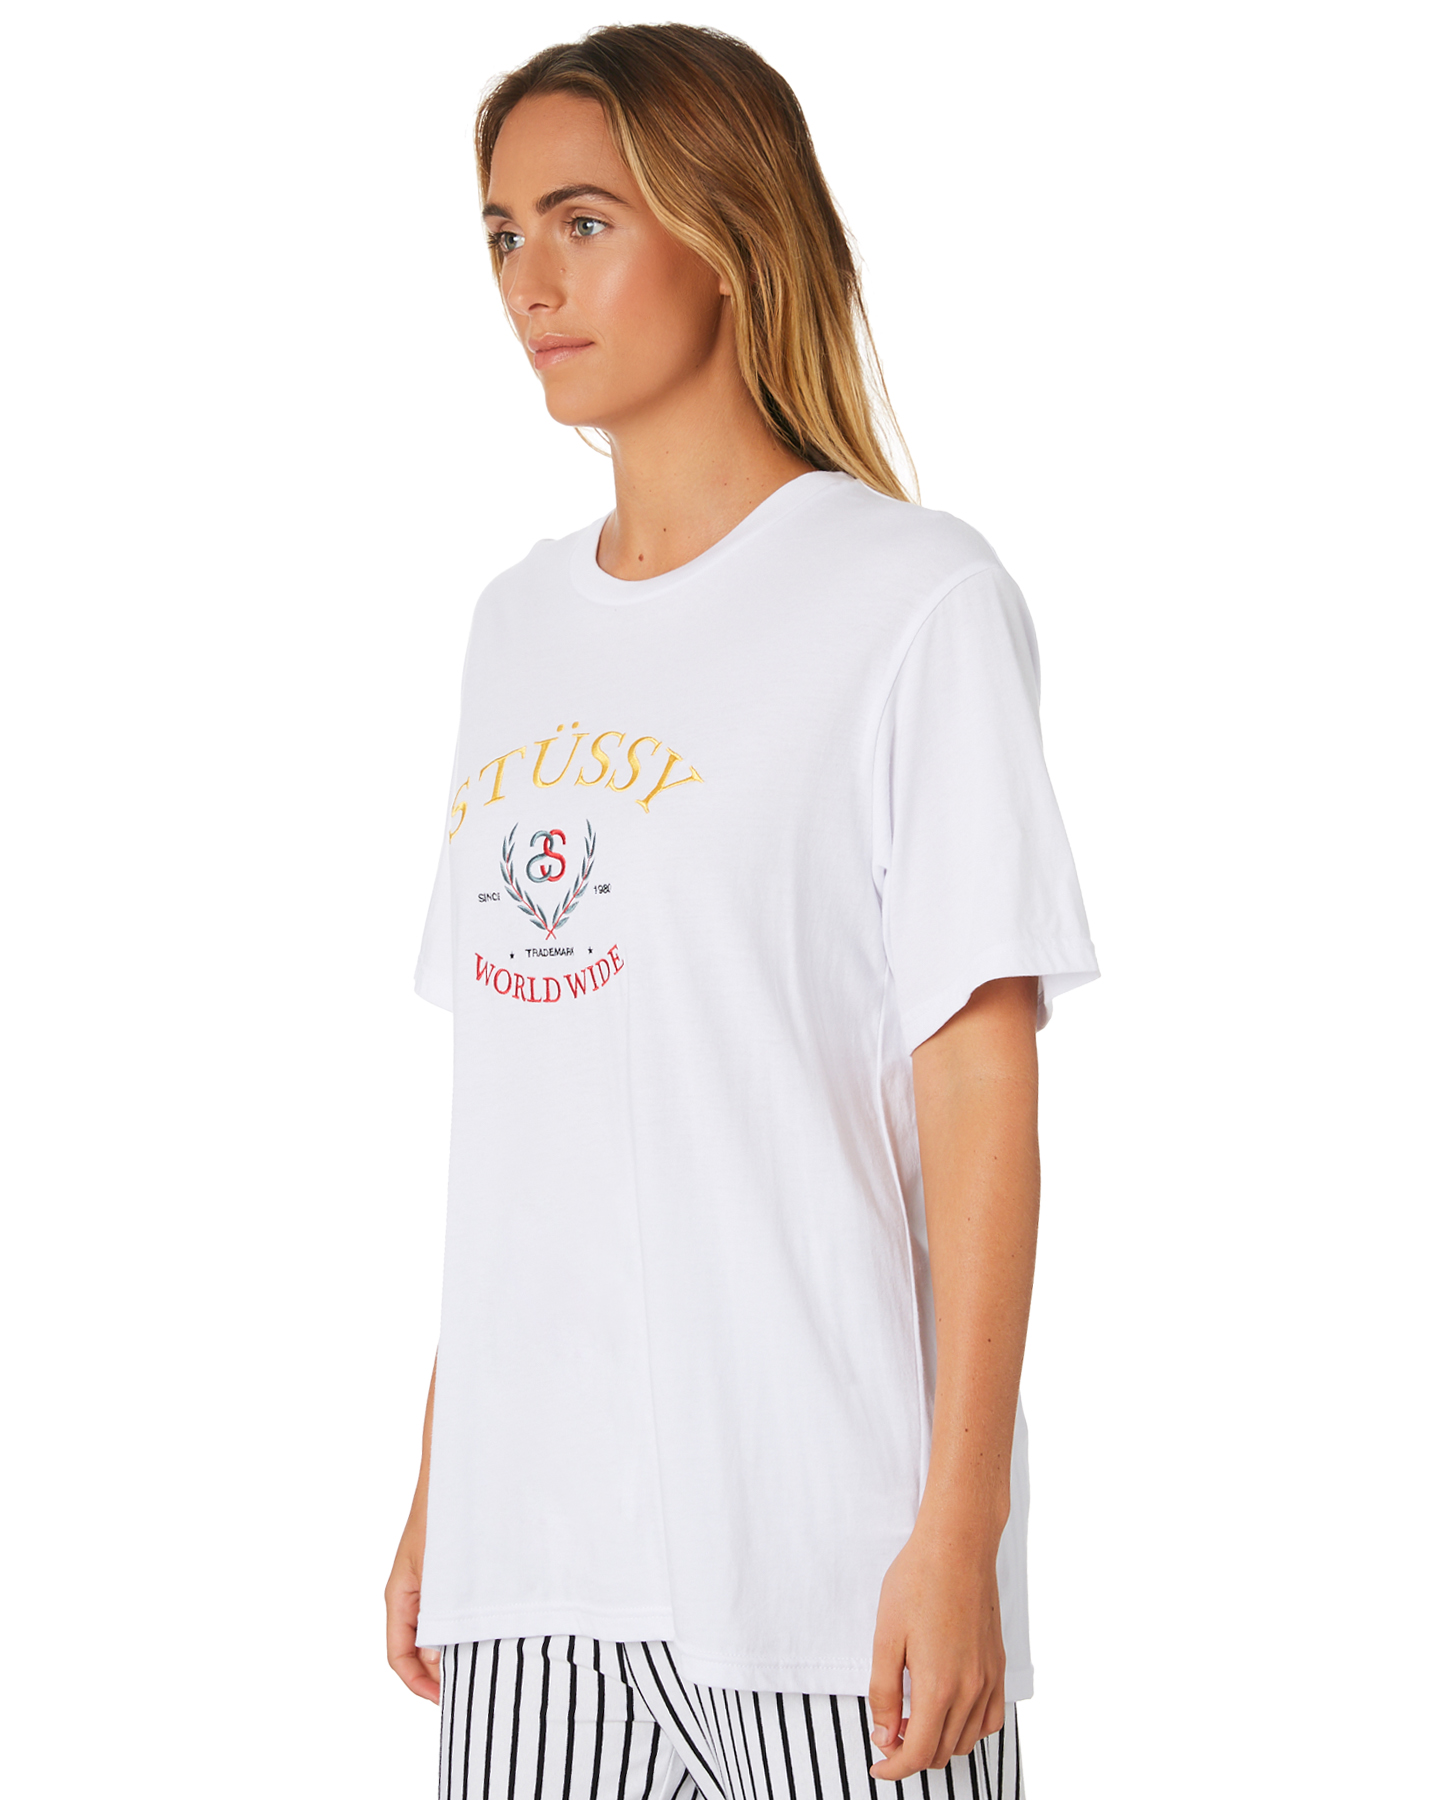 adc7250d973 New Stussy Women  039 s Benson Os Tee Crew Neck Short Sleeve Cotton ...